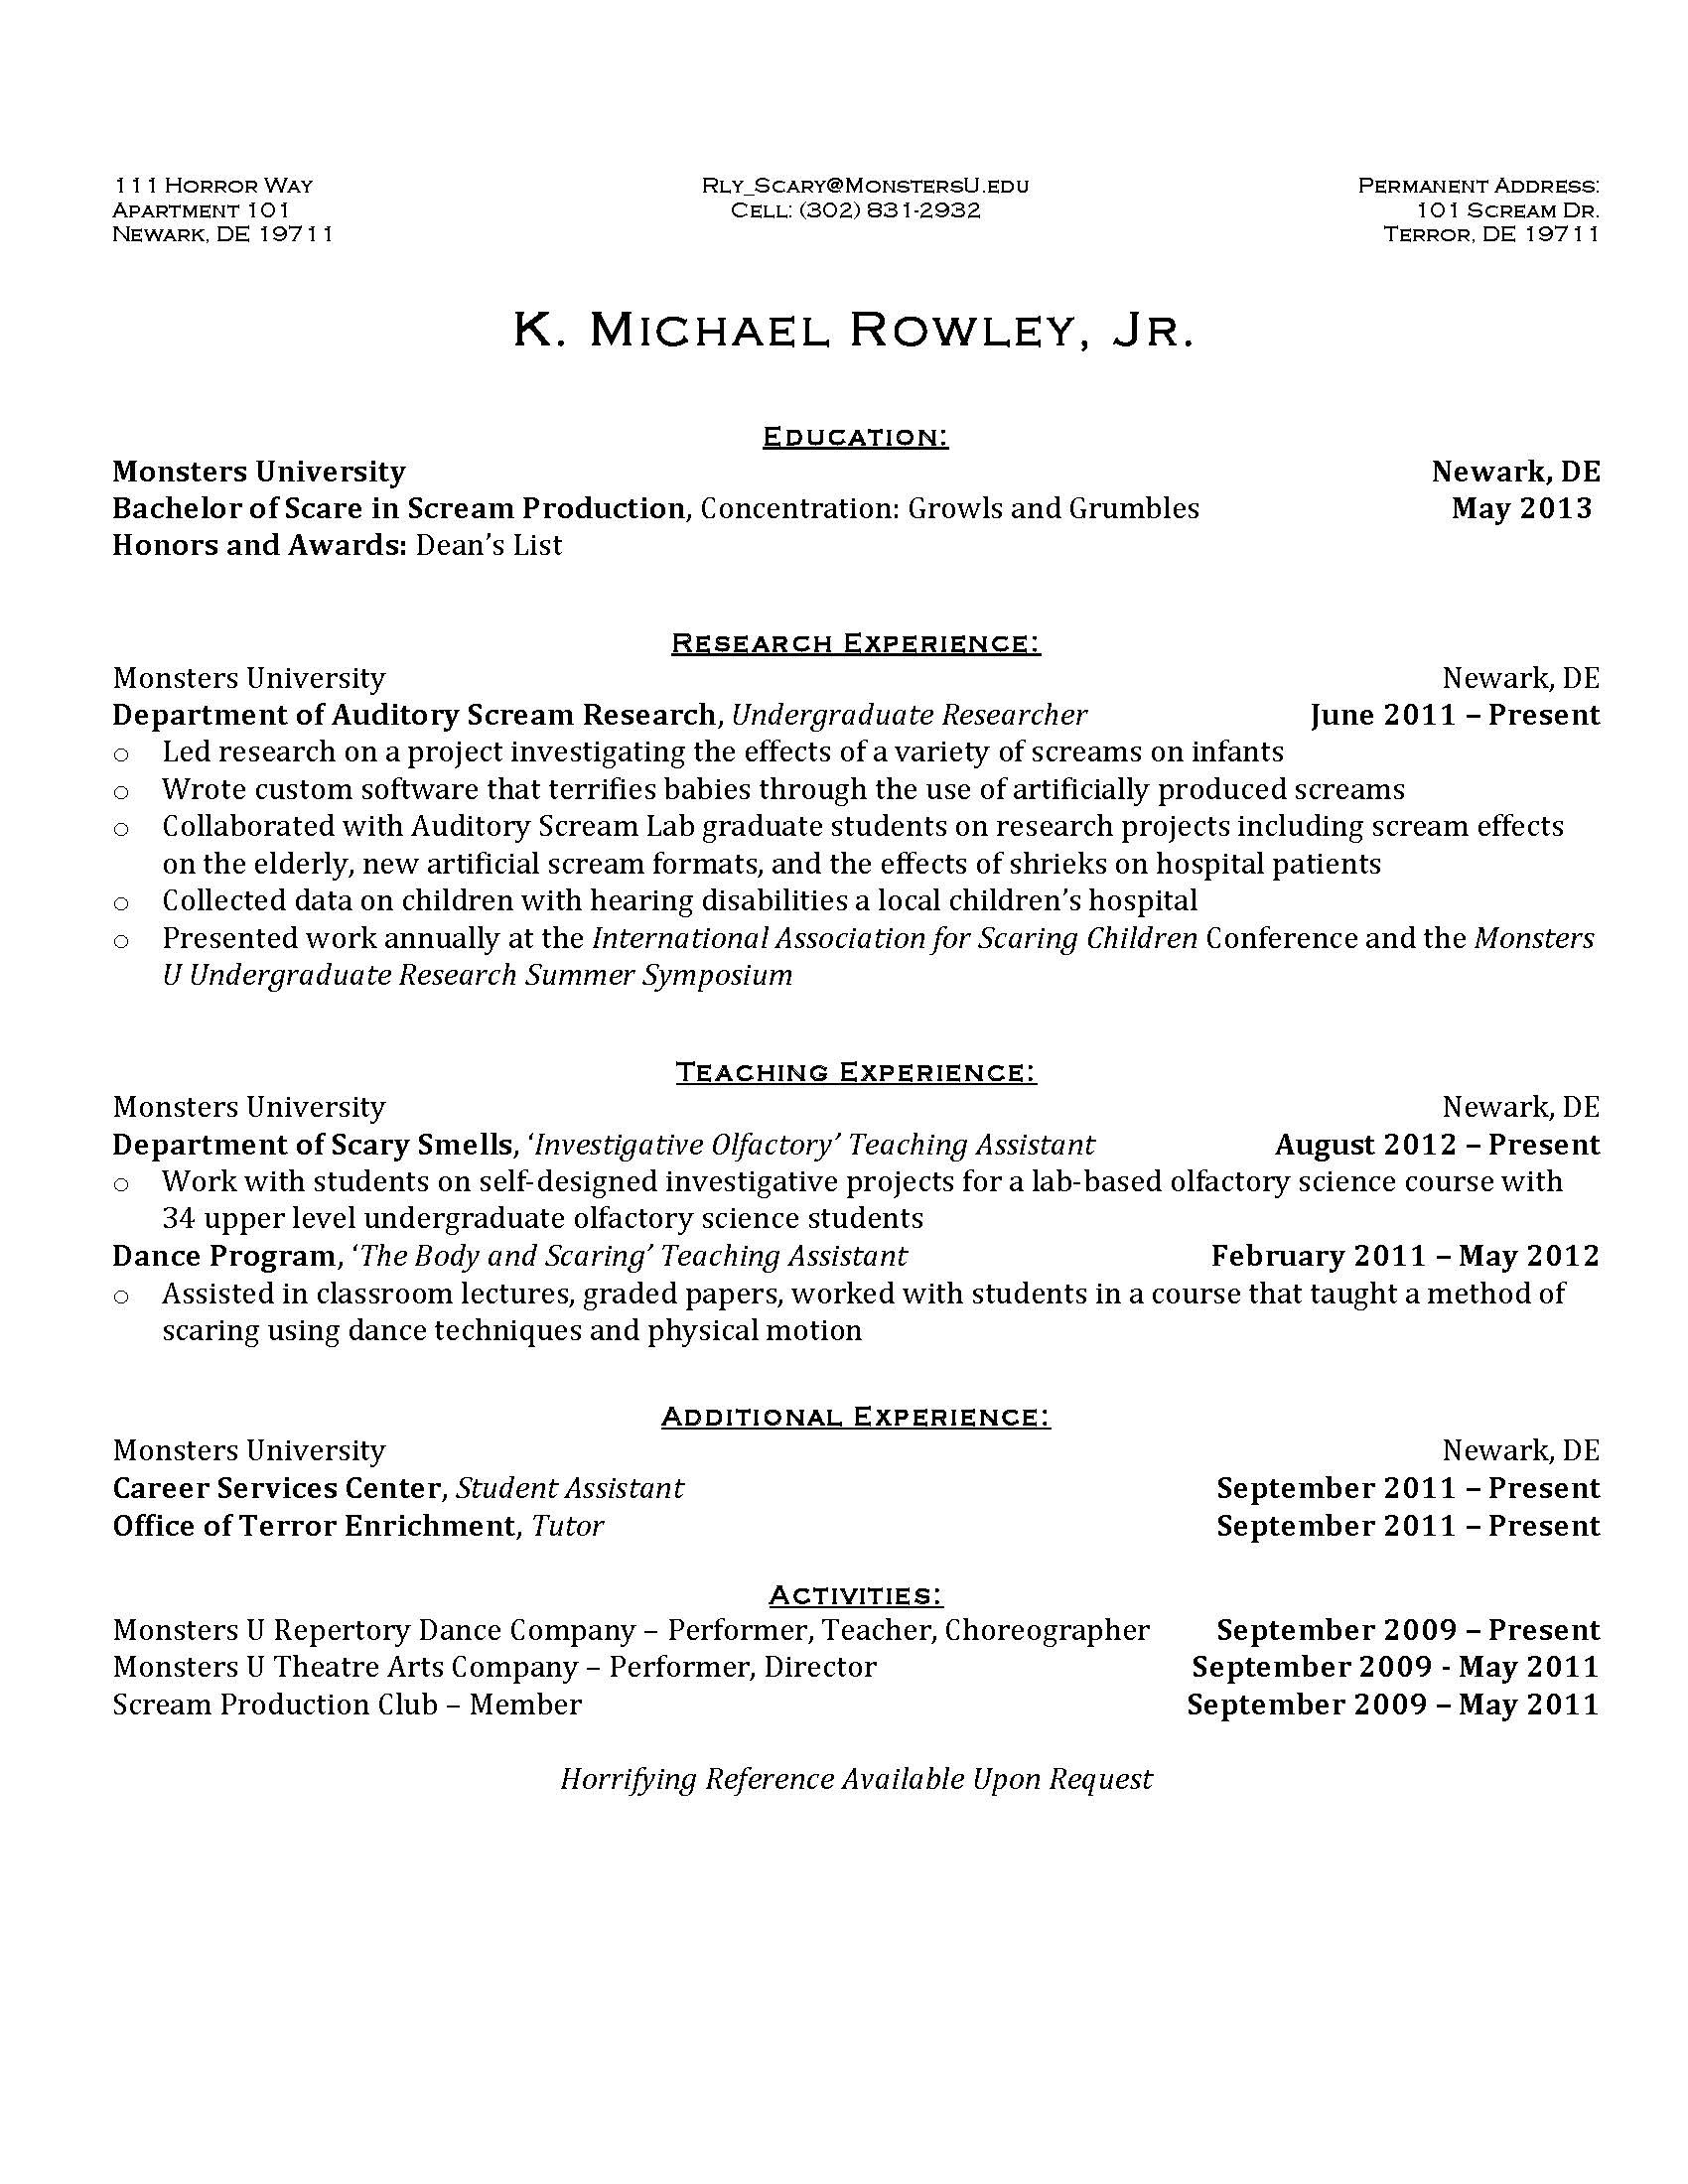 posting a resume online sample cover letter for job interview